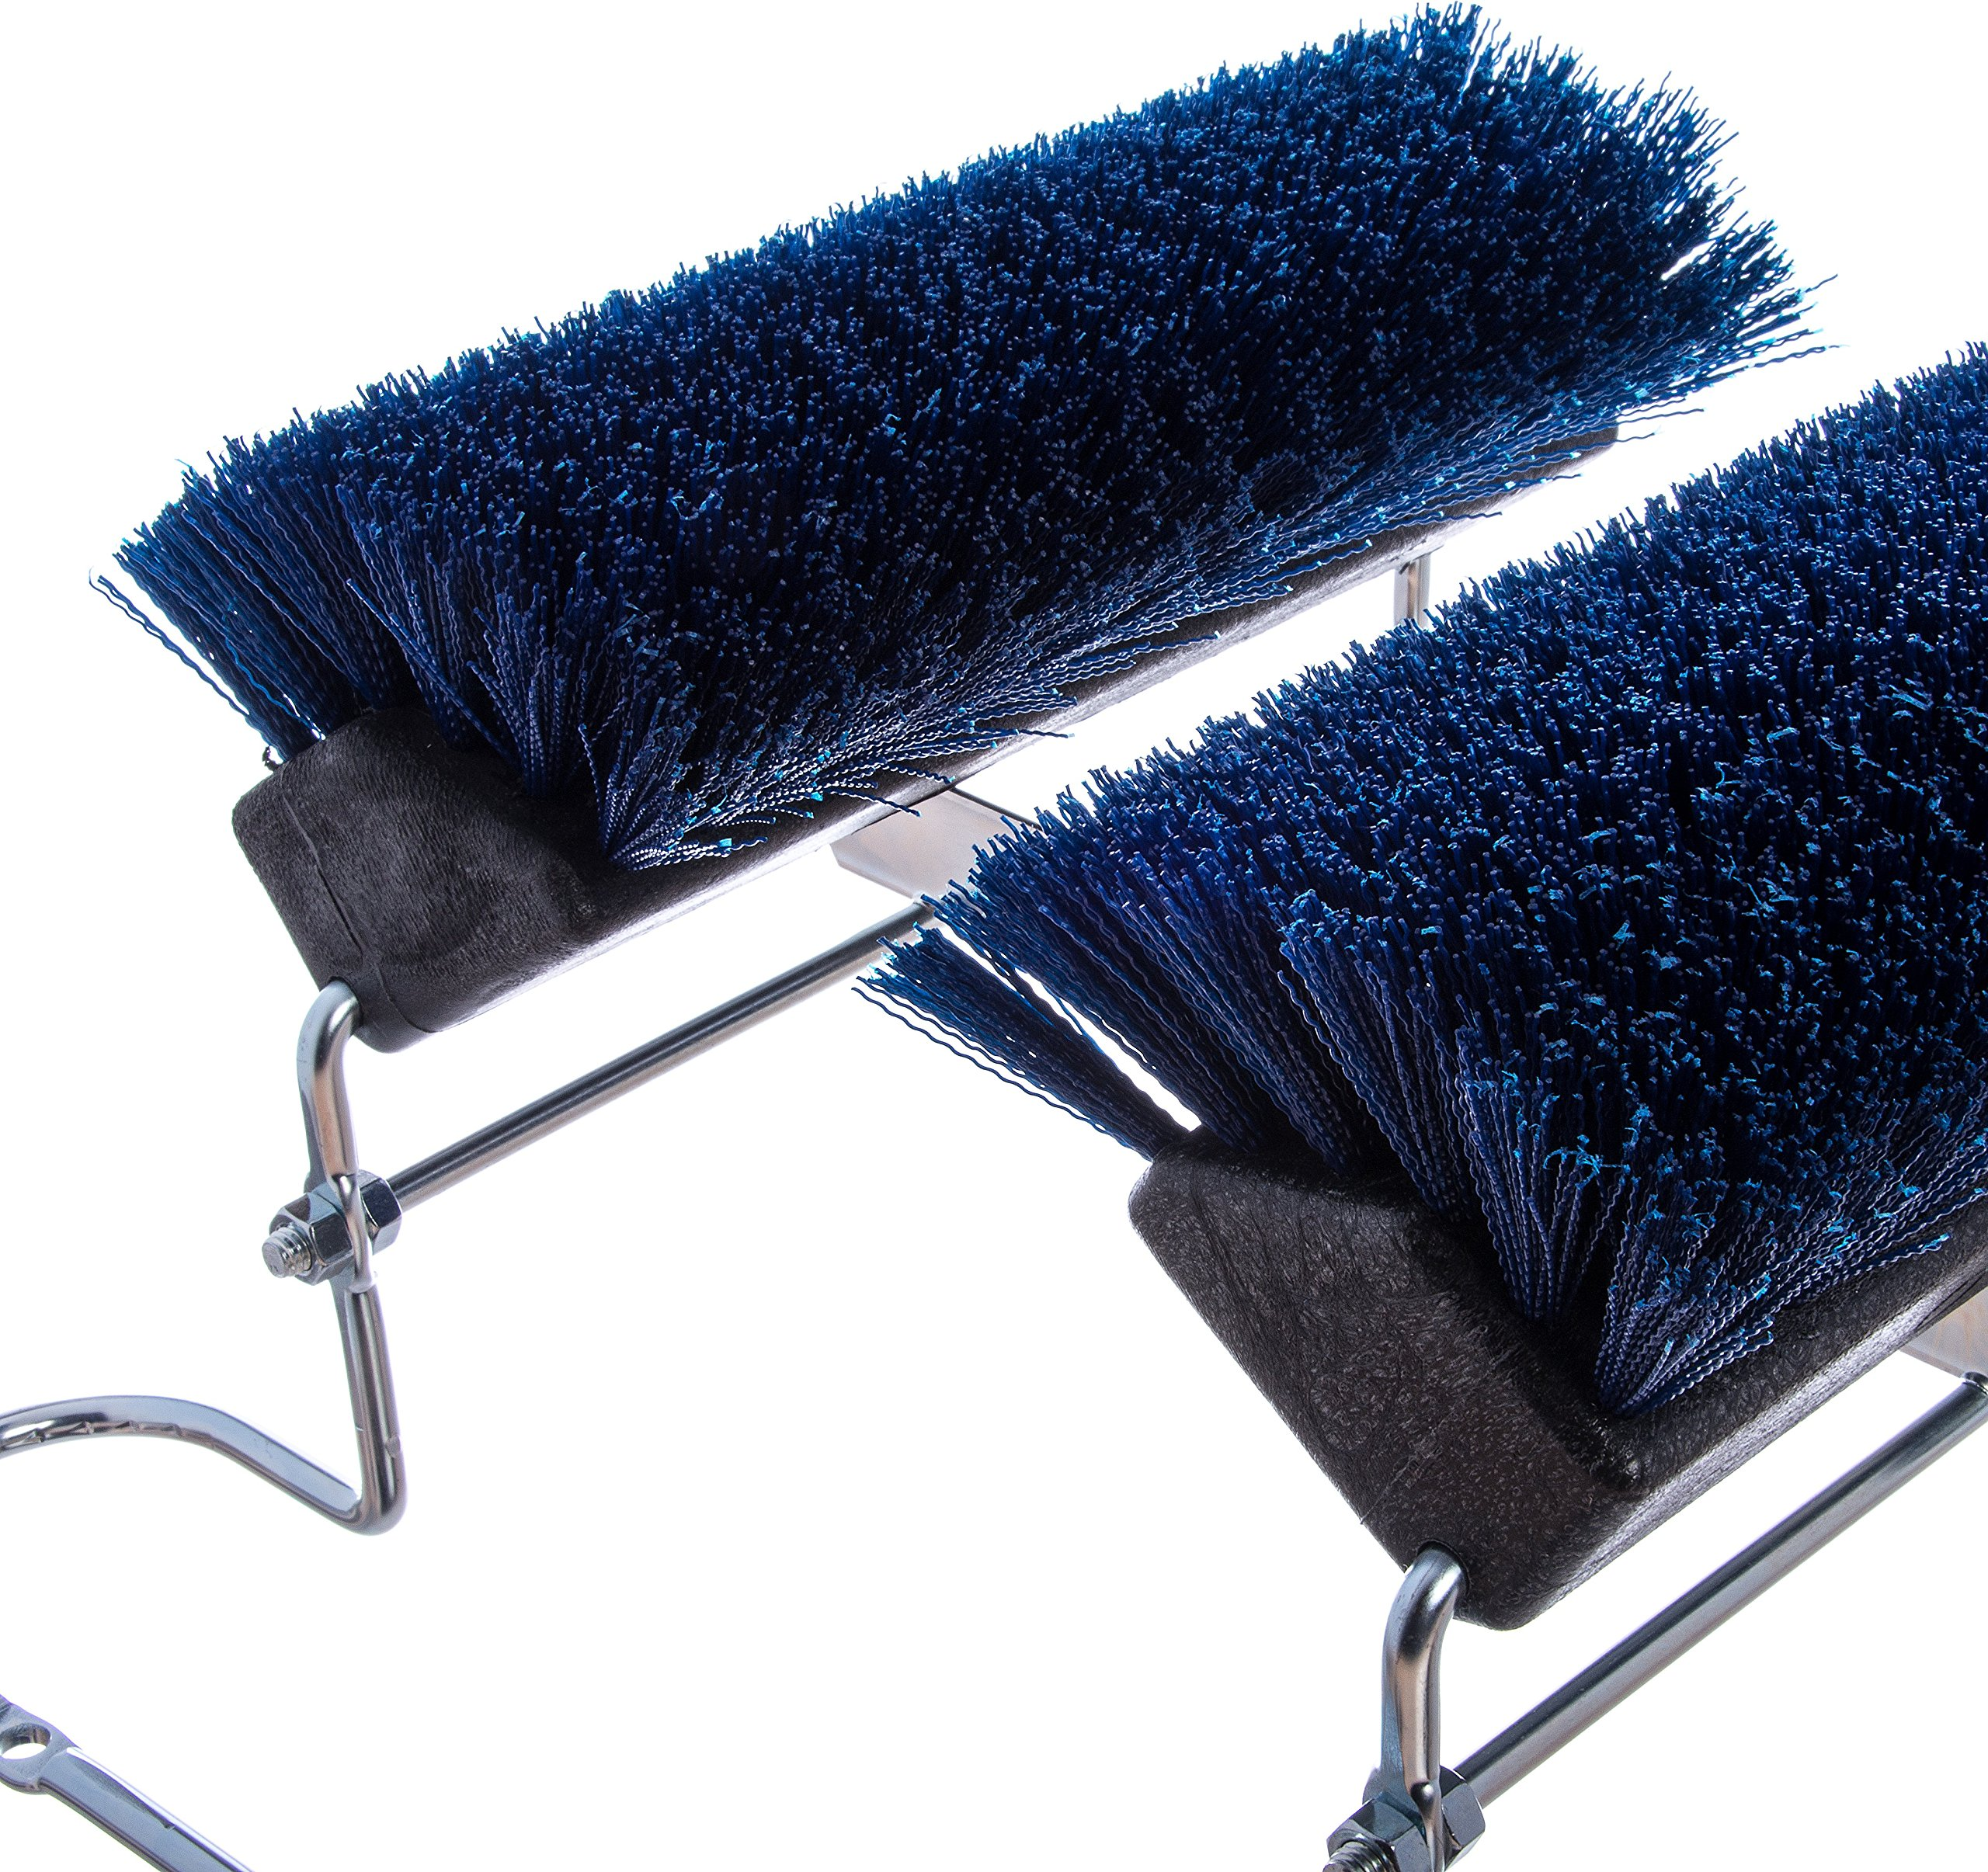 Carlisle 4042414 Commercial Boot 'N Shoe Brush Scraper with Chrome Plated Steel Frame, Blue by Carlisle (Image #3)